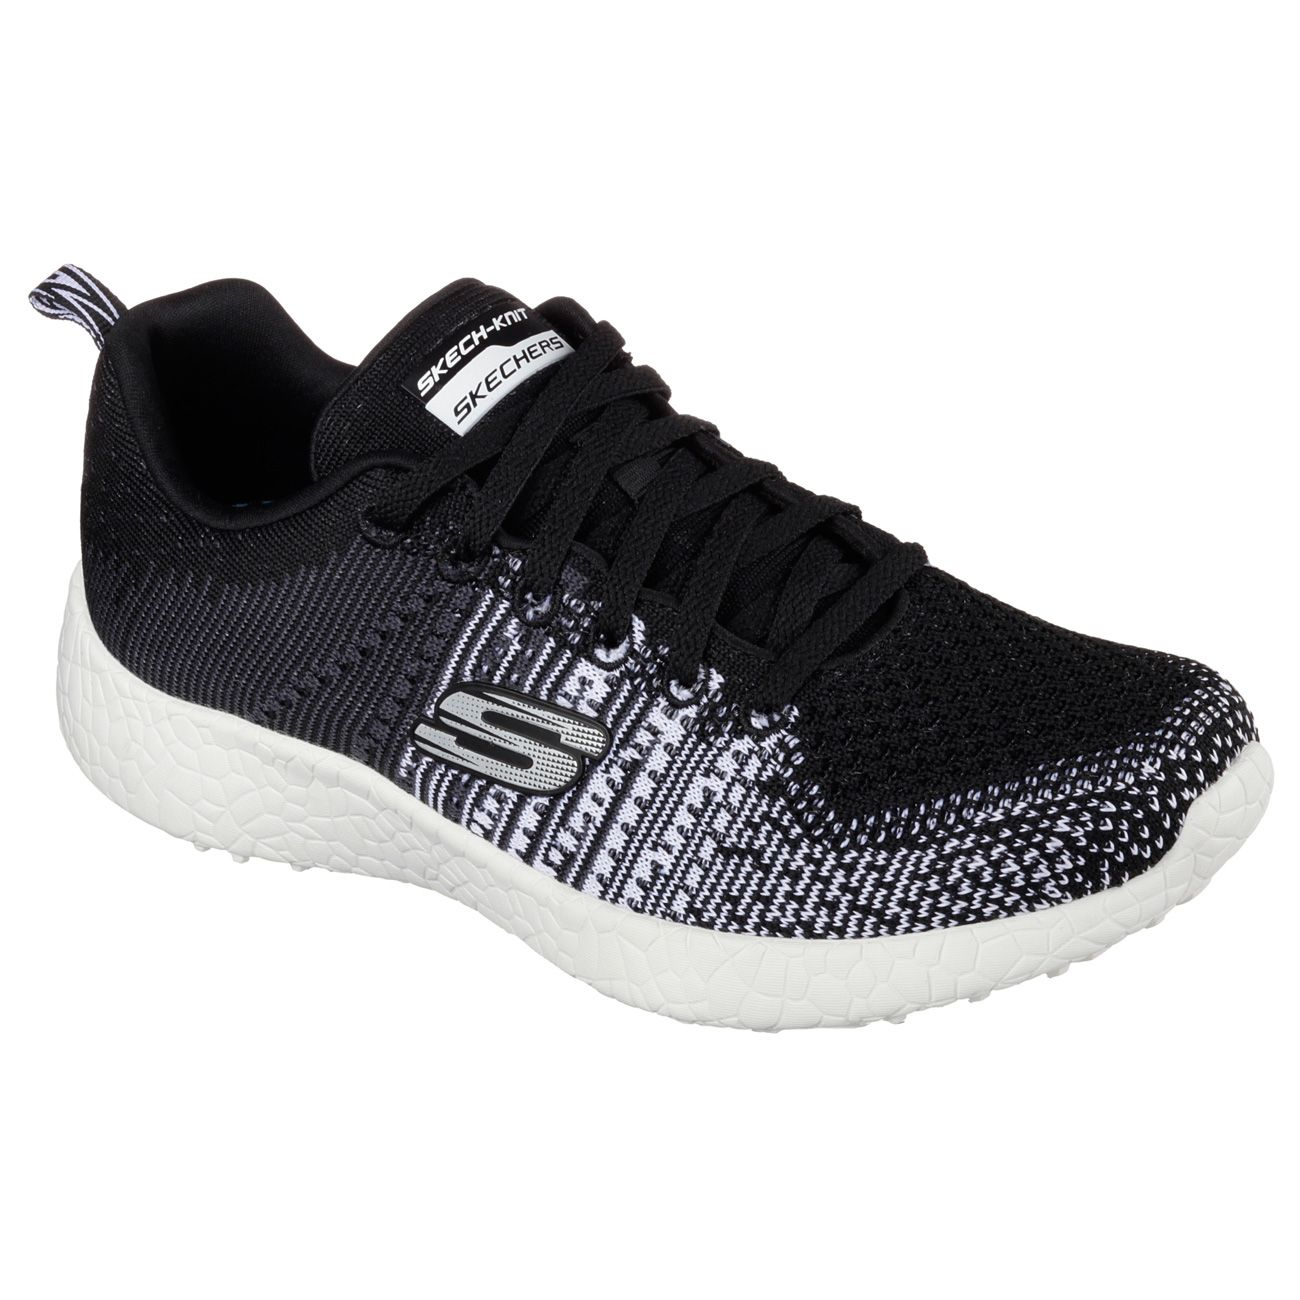 Skechers Sport Burst Ellipse Ladies Athletic Shoes